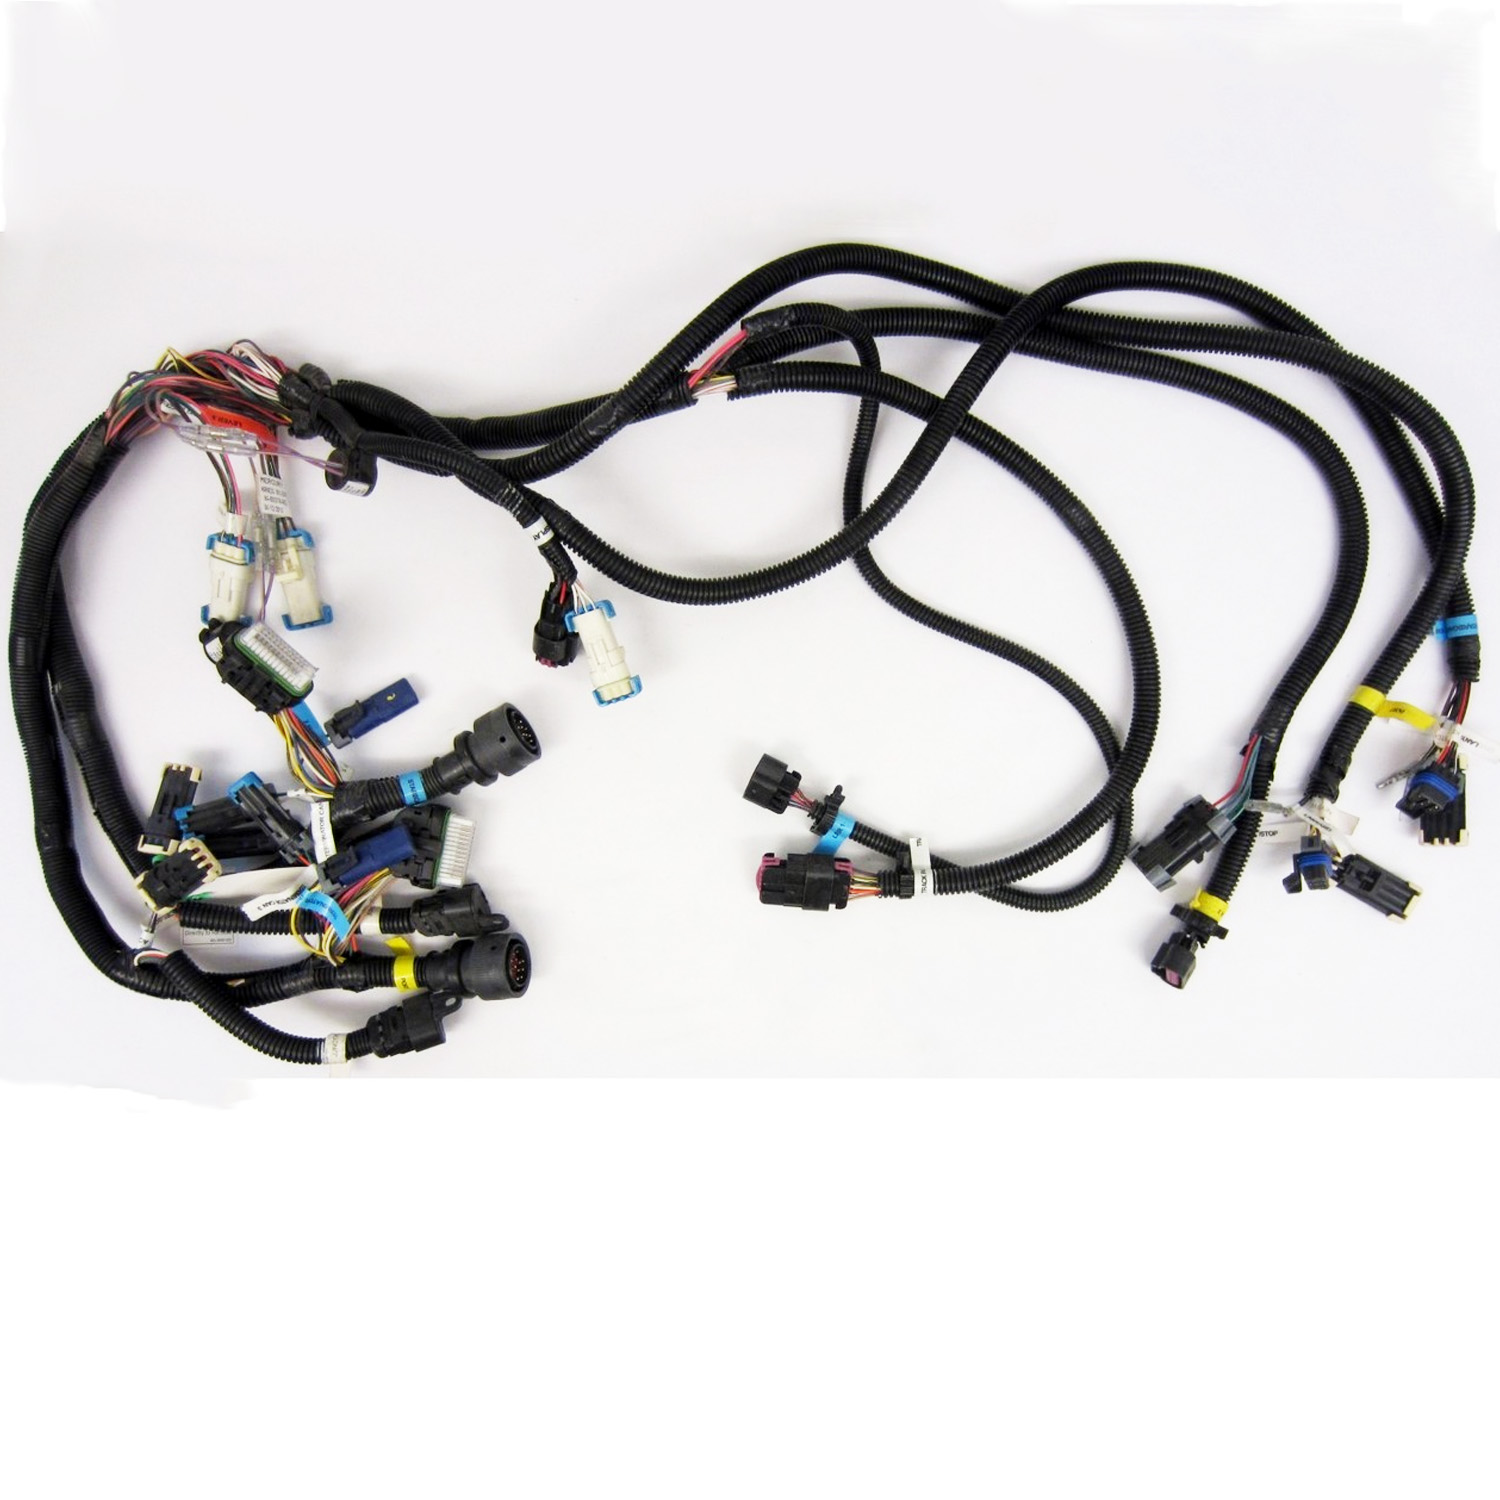 mercury new oem smartcraft dts verado dual engine wire harness 84 rh picclick com